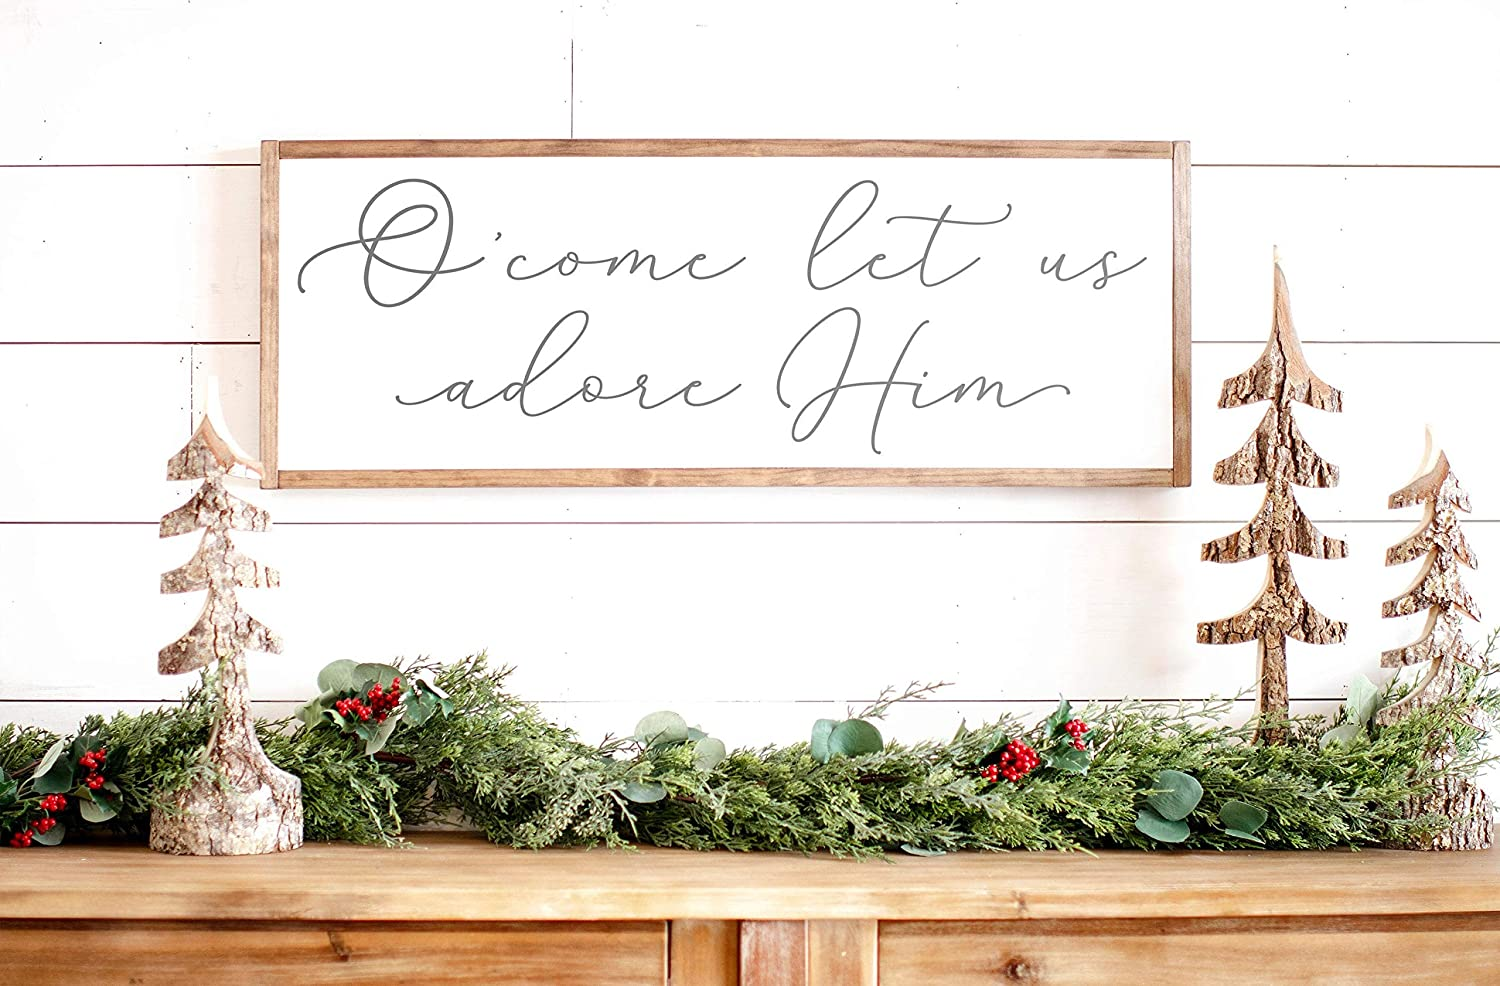 O Come Let Us Adore Hime Sign Framed Christmas Signs Christmas Wall Signs Oh Come Let Us Adore Him Wood Framed Signs 6x20inch